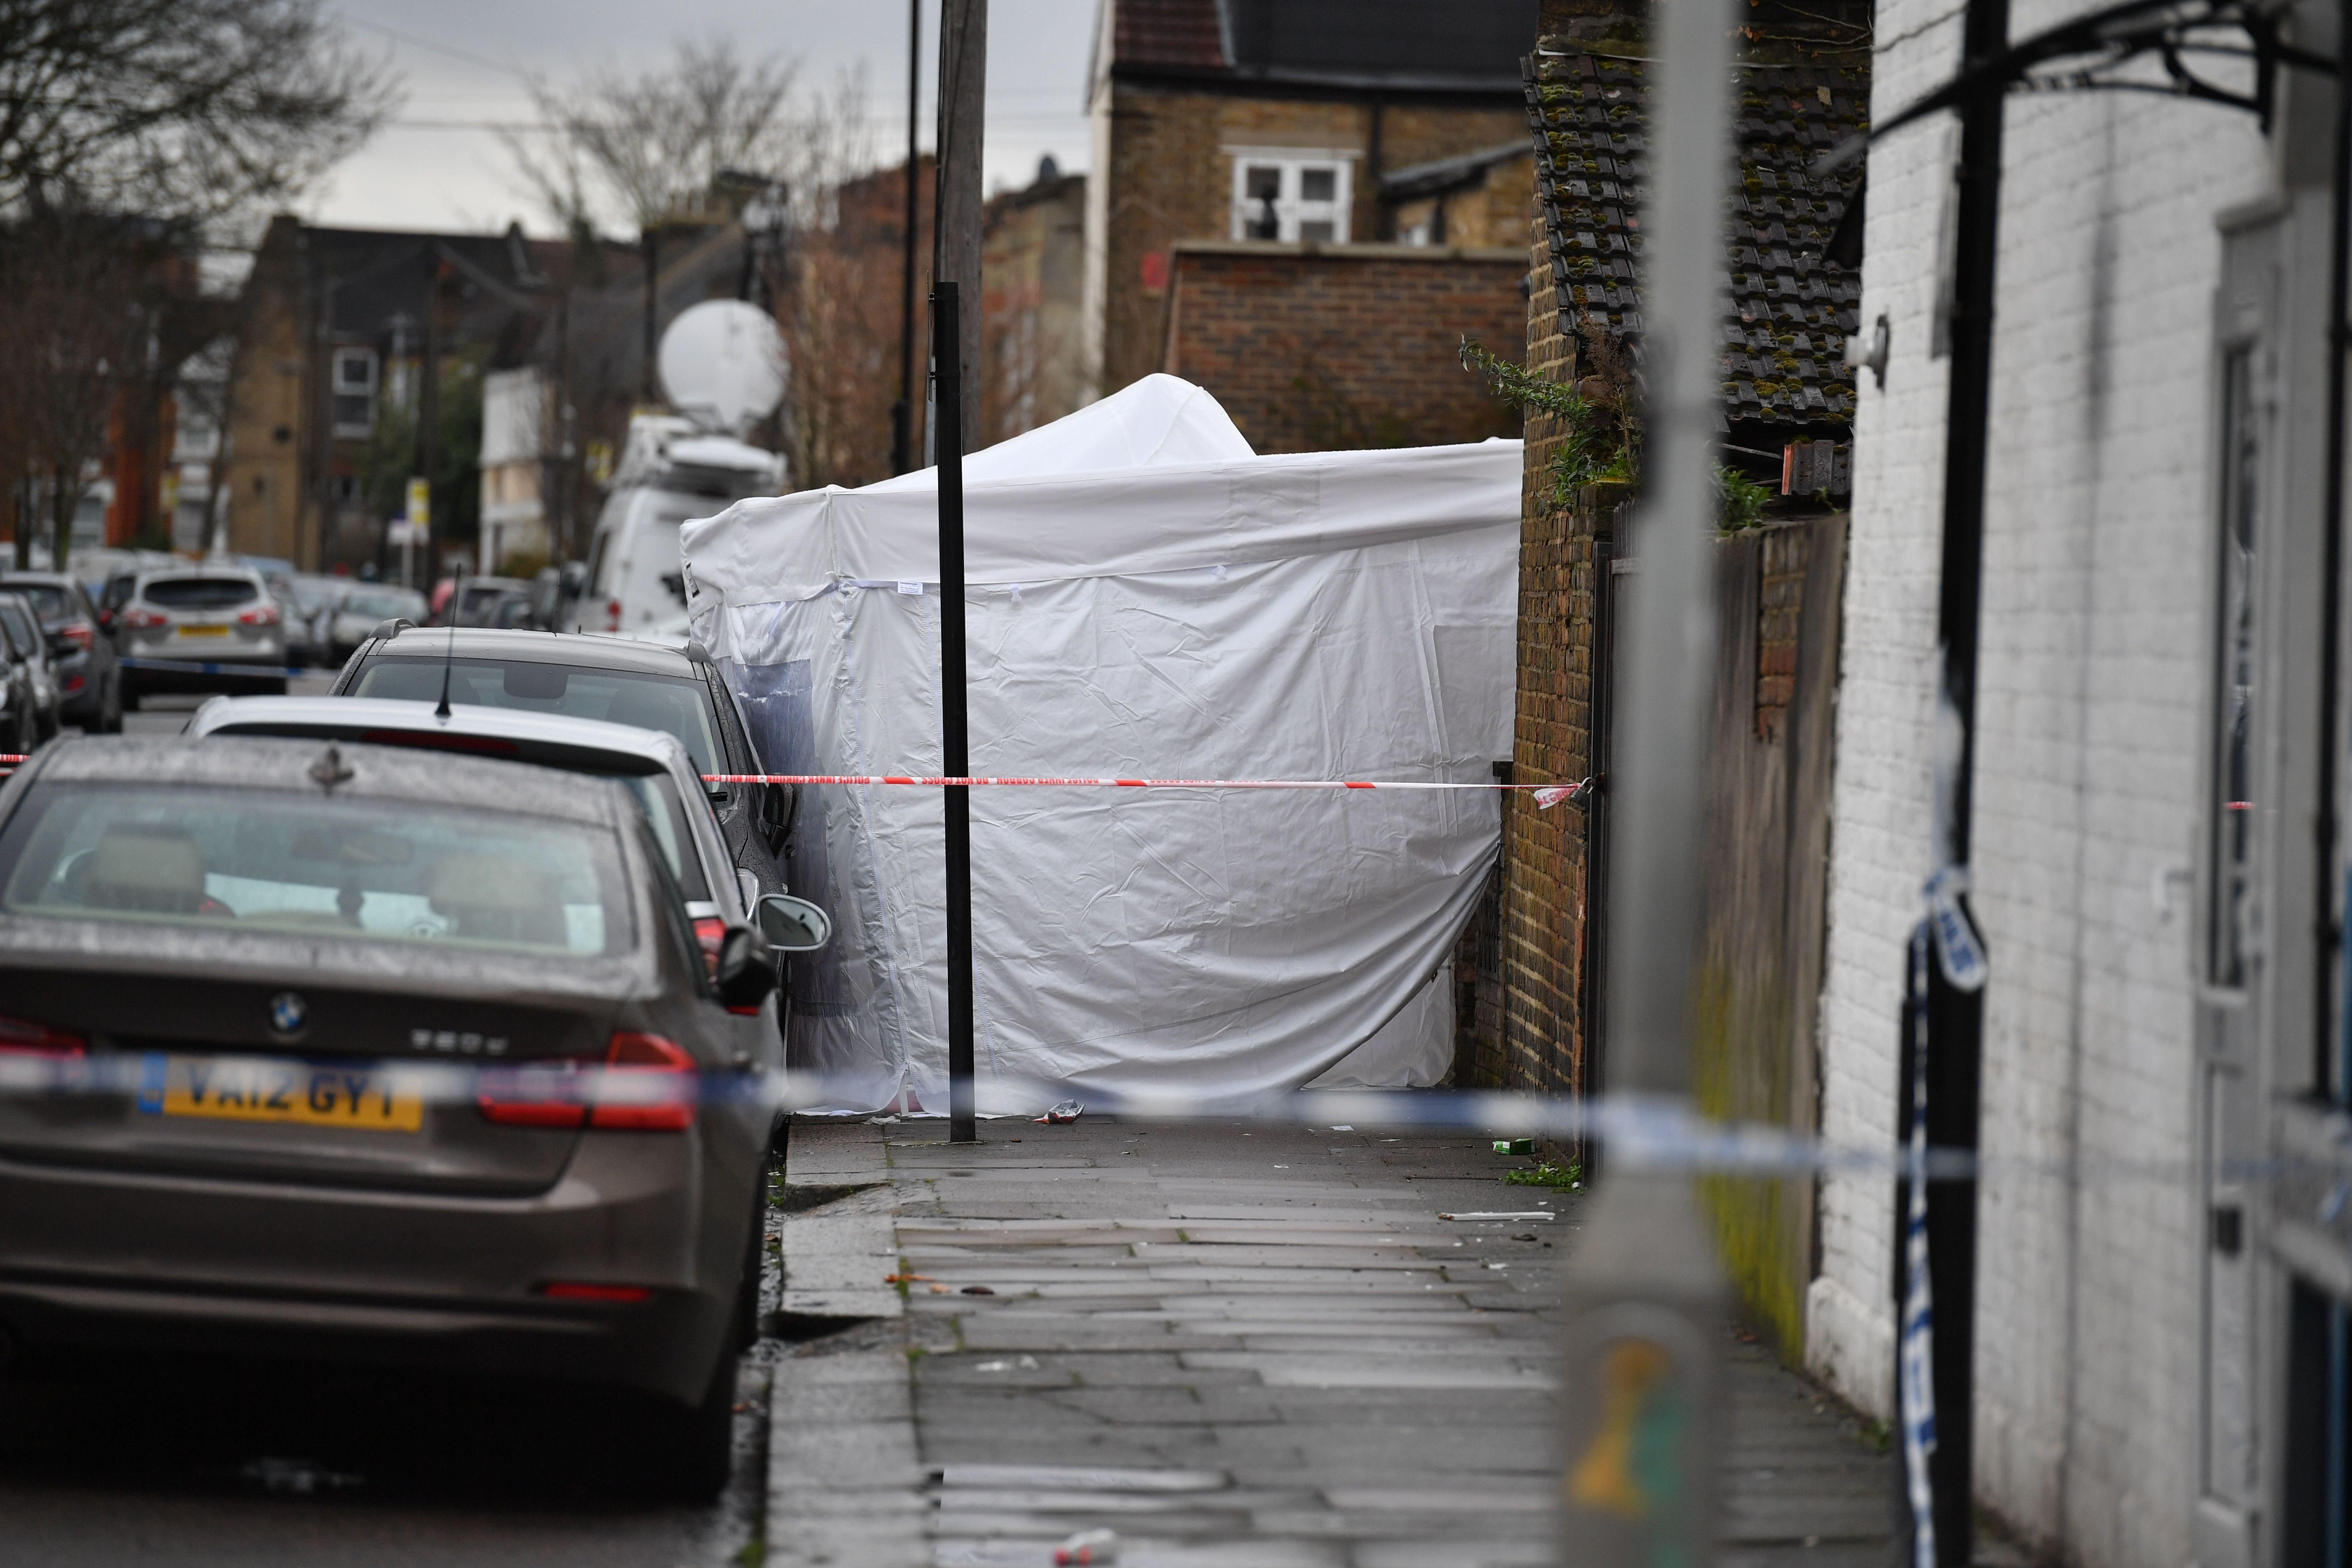 london murder rate higher than new york city for first time ever in